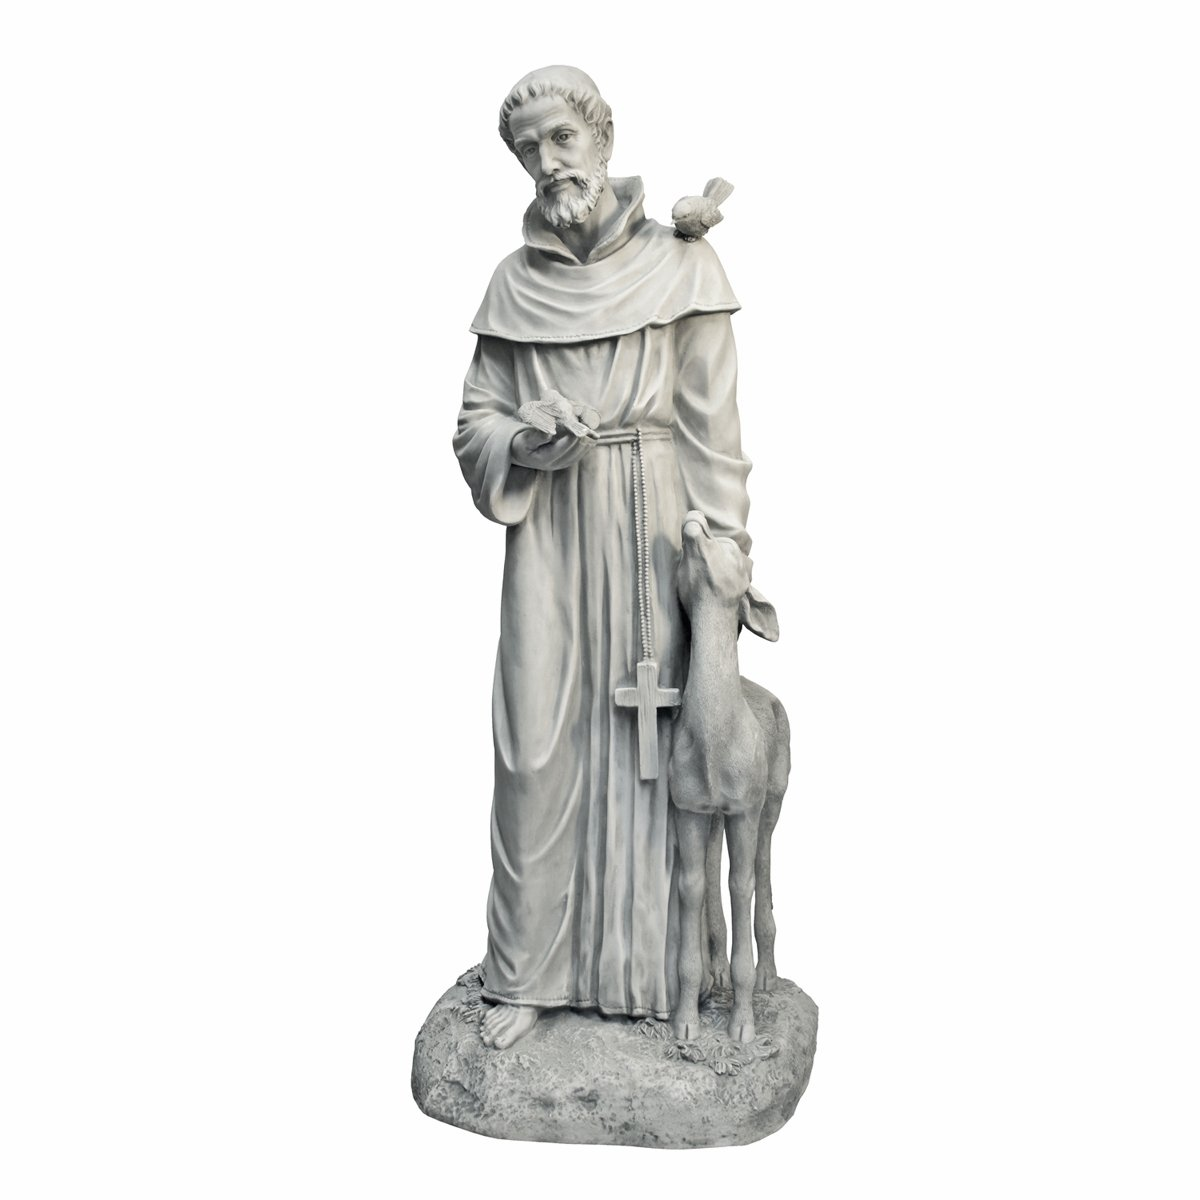 Design Toscano Saint Francis of Assisi, Patron Saint of Animals Garden Statue